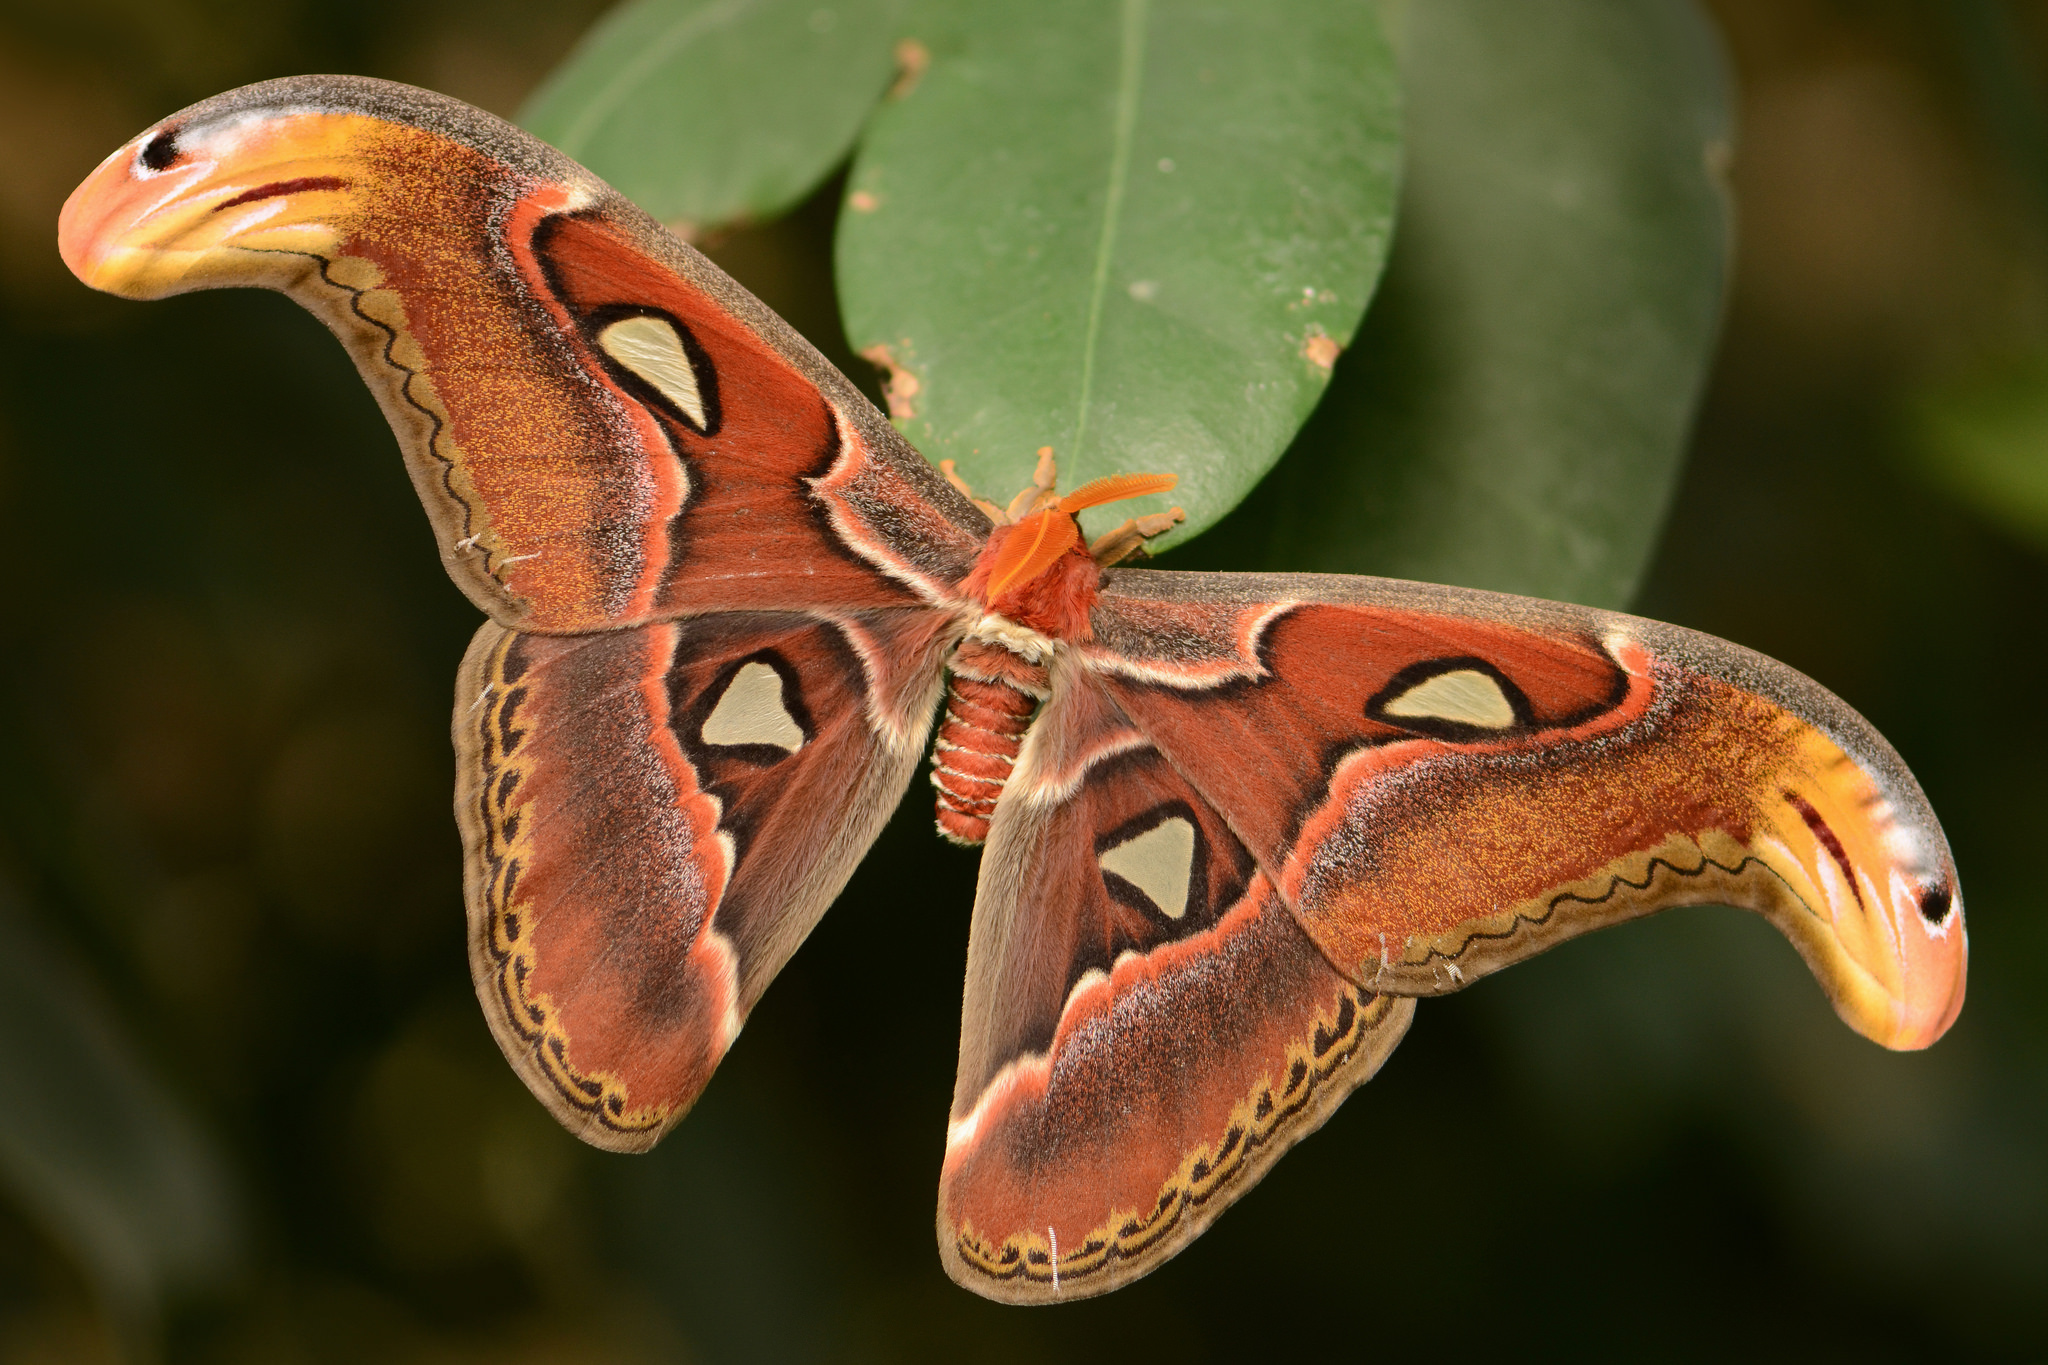 Photo 5 : Attacus atlas female (Source : Alias 0591 - Flickr.com)